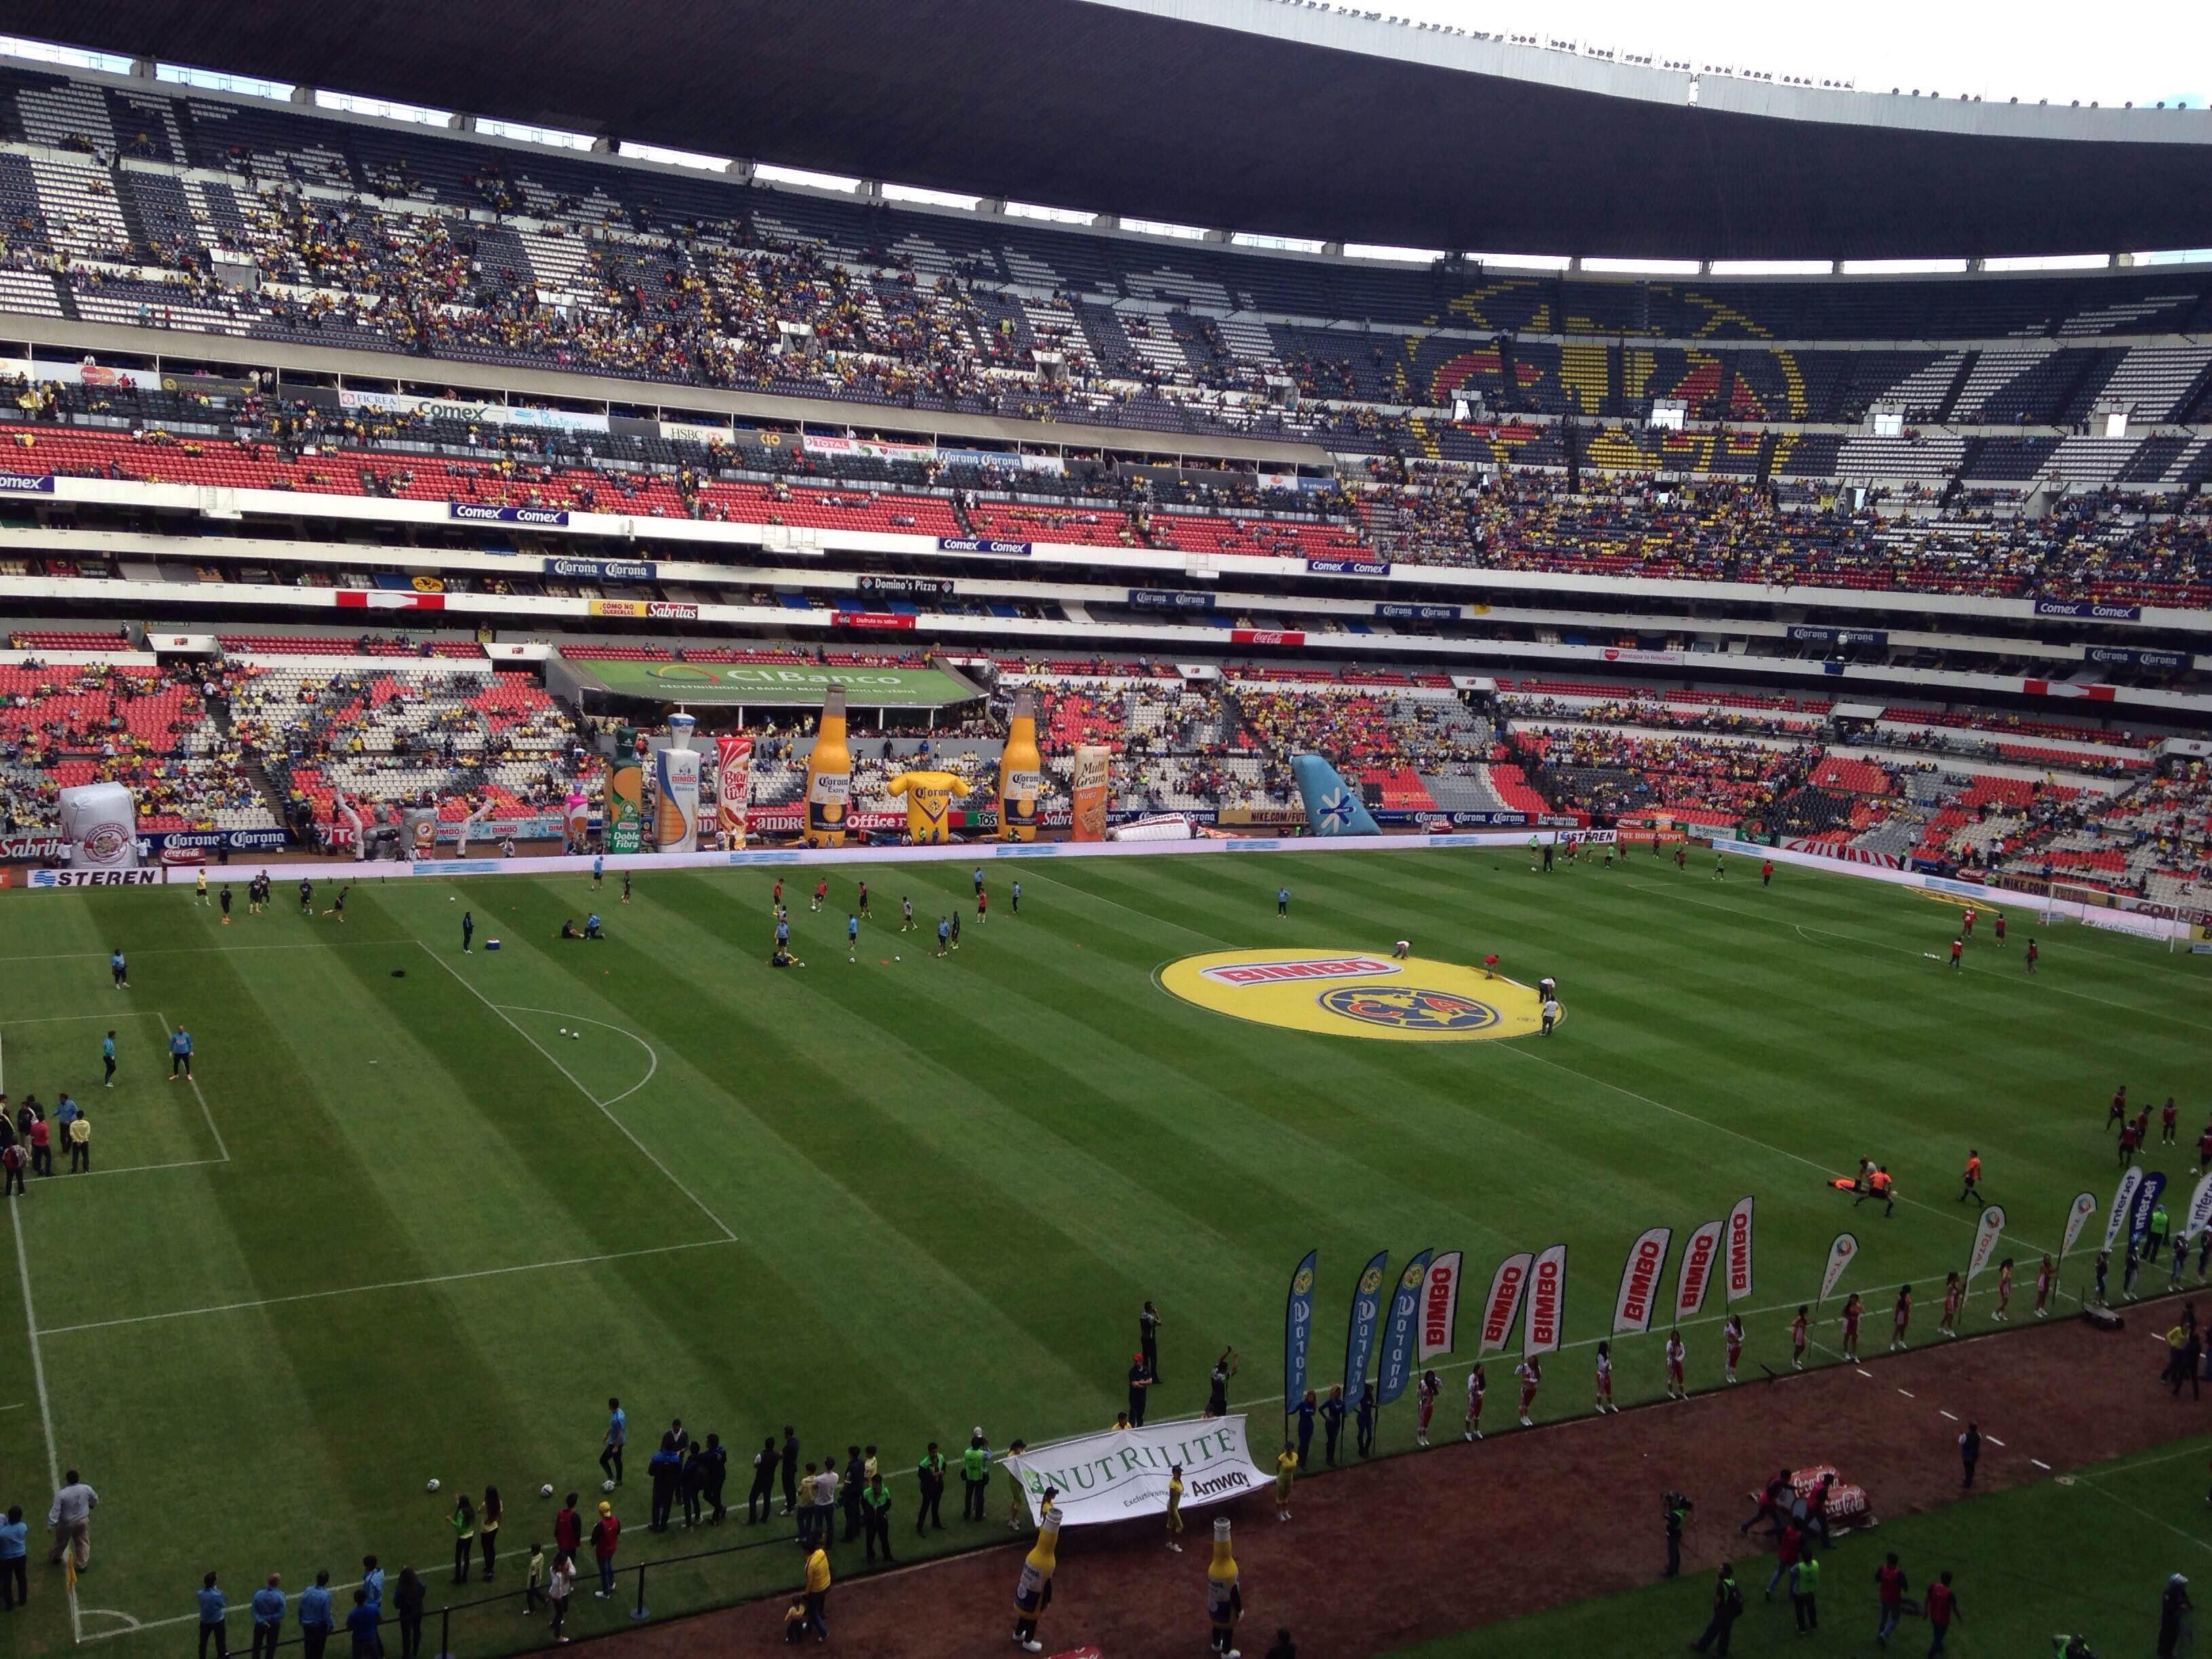 Evento multideportivo en Estadio Azteca